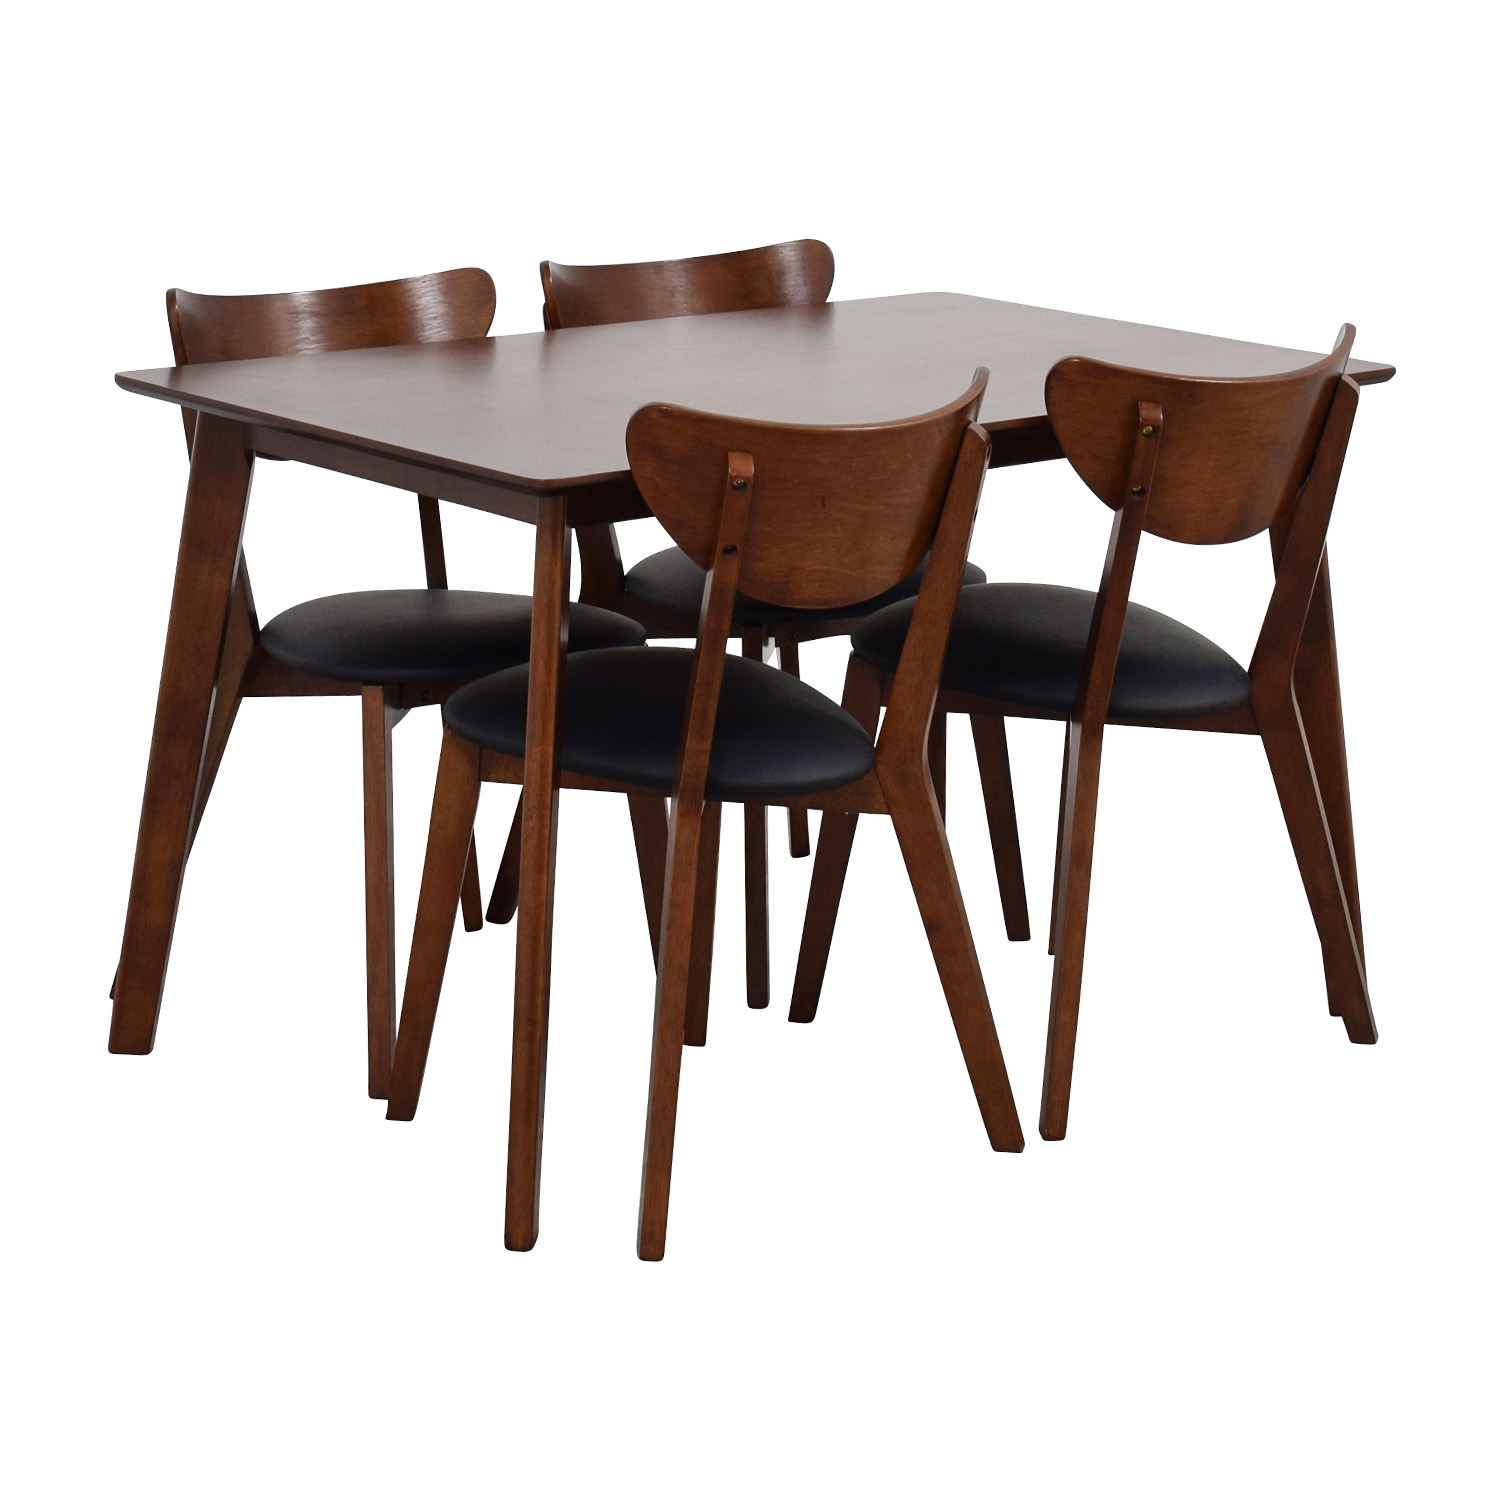 dining chair sets of 4 grey upholstered chairs uk 35 off wholesale interiors brown table set with